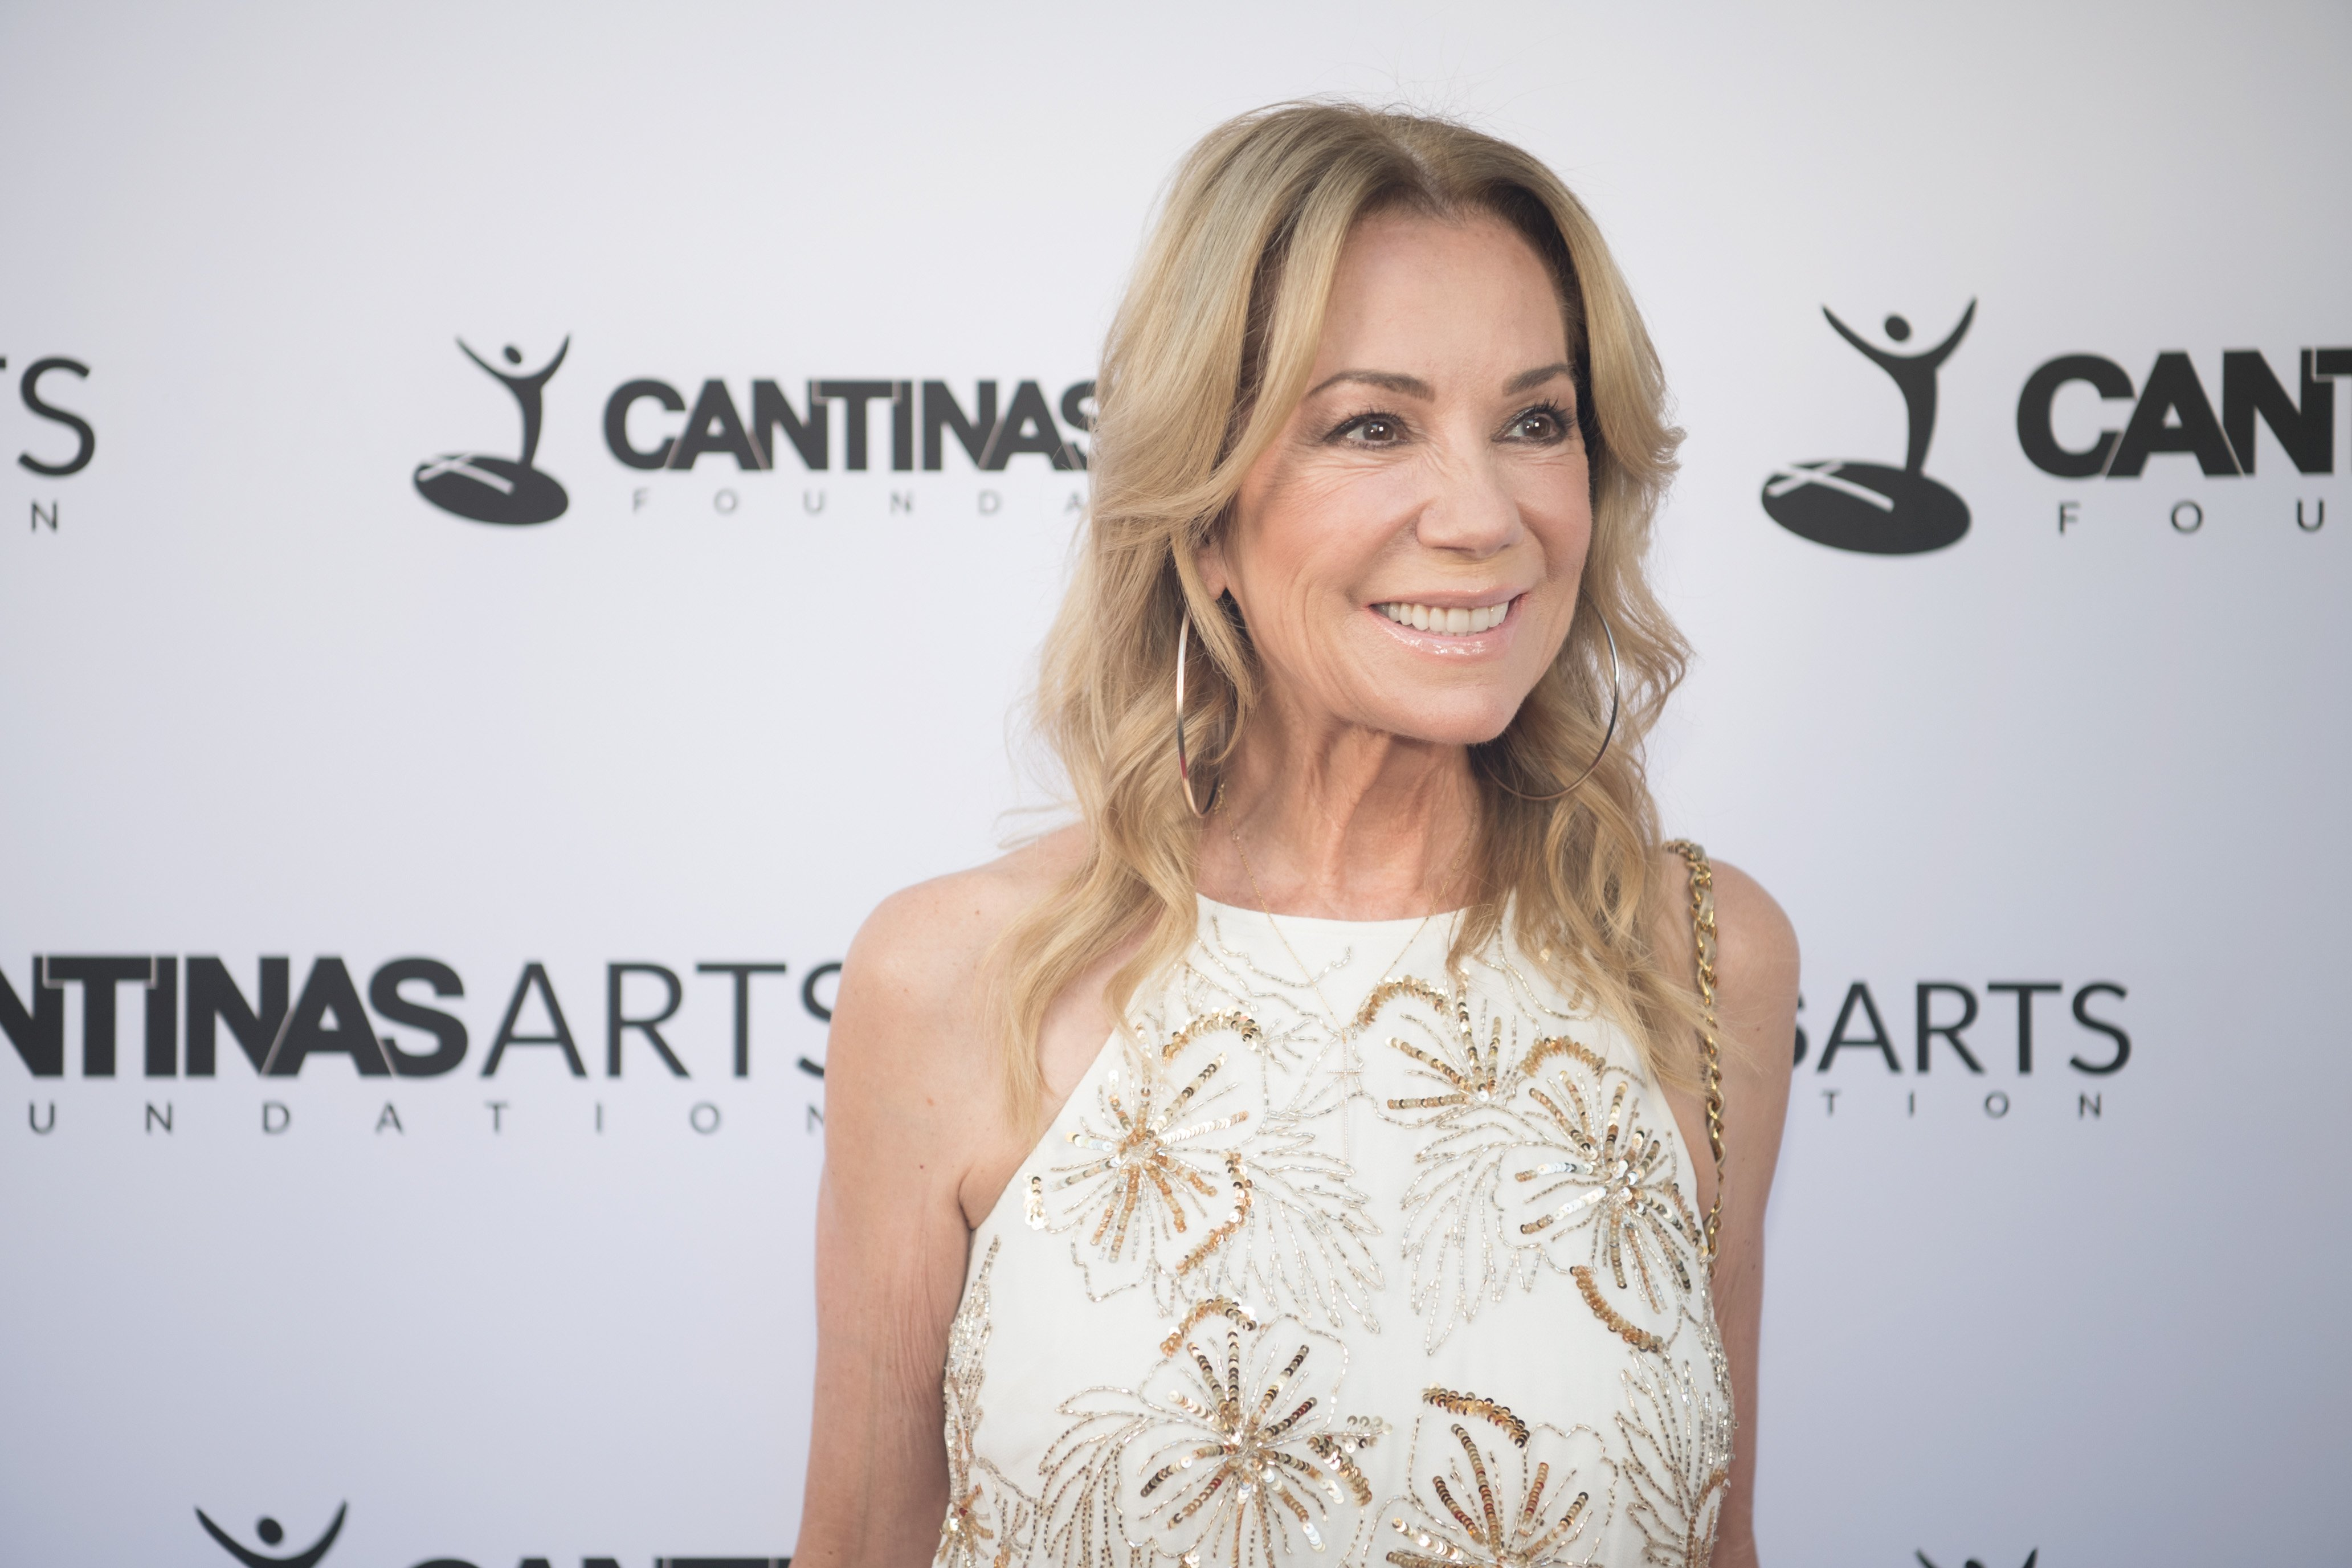 Kathie Lee Gifford arrives at The Cantinas Arts Foundation COTA Celebration of the Arts on September 15, 2018 | Photo: GettyImages